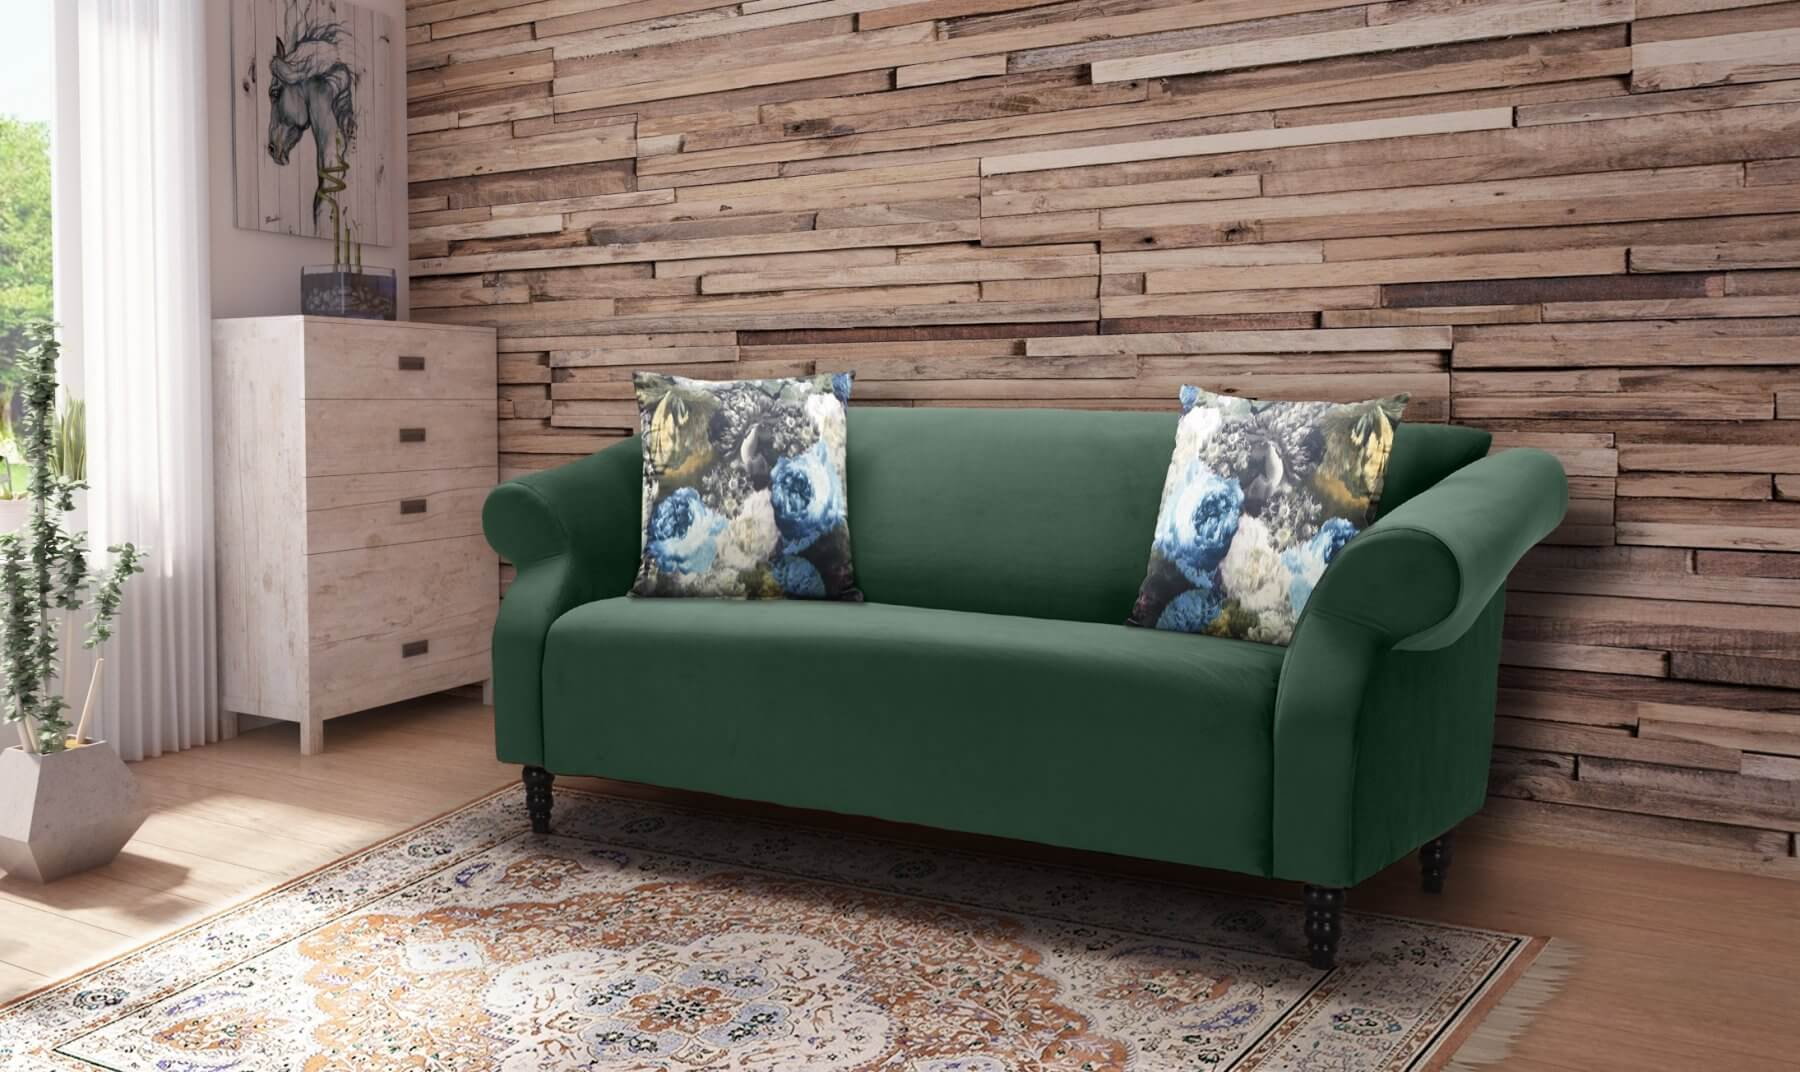 Velvet Bottle Green 3 Seater Avici Shout Sofa With Accent Cushions